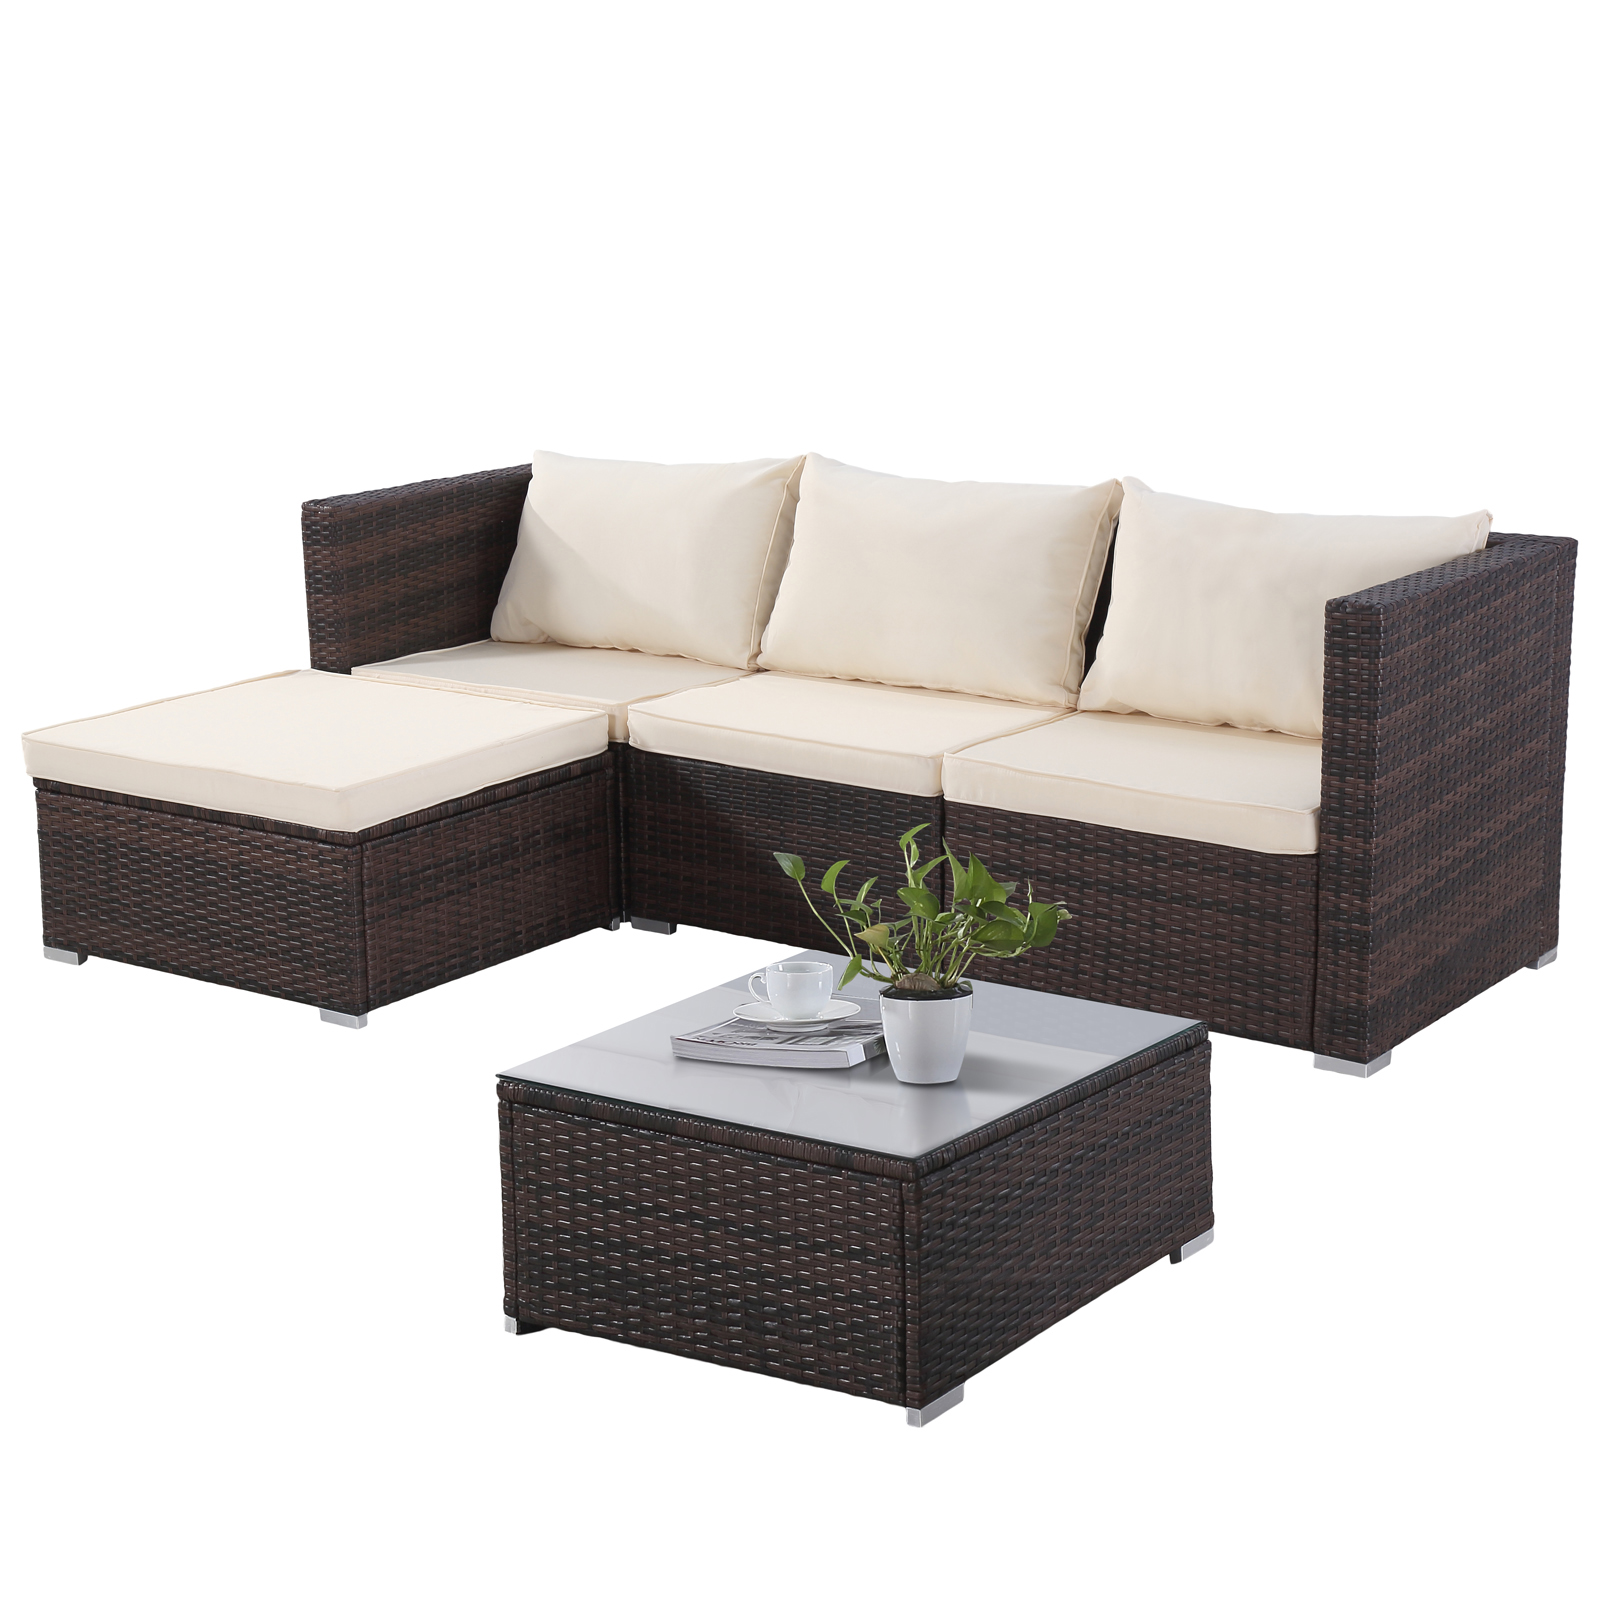 Rattan Garden Sofa Set Ebay Brown 7pc Patio Pe Rattan Wicker Sofa Set Garden Furniture